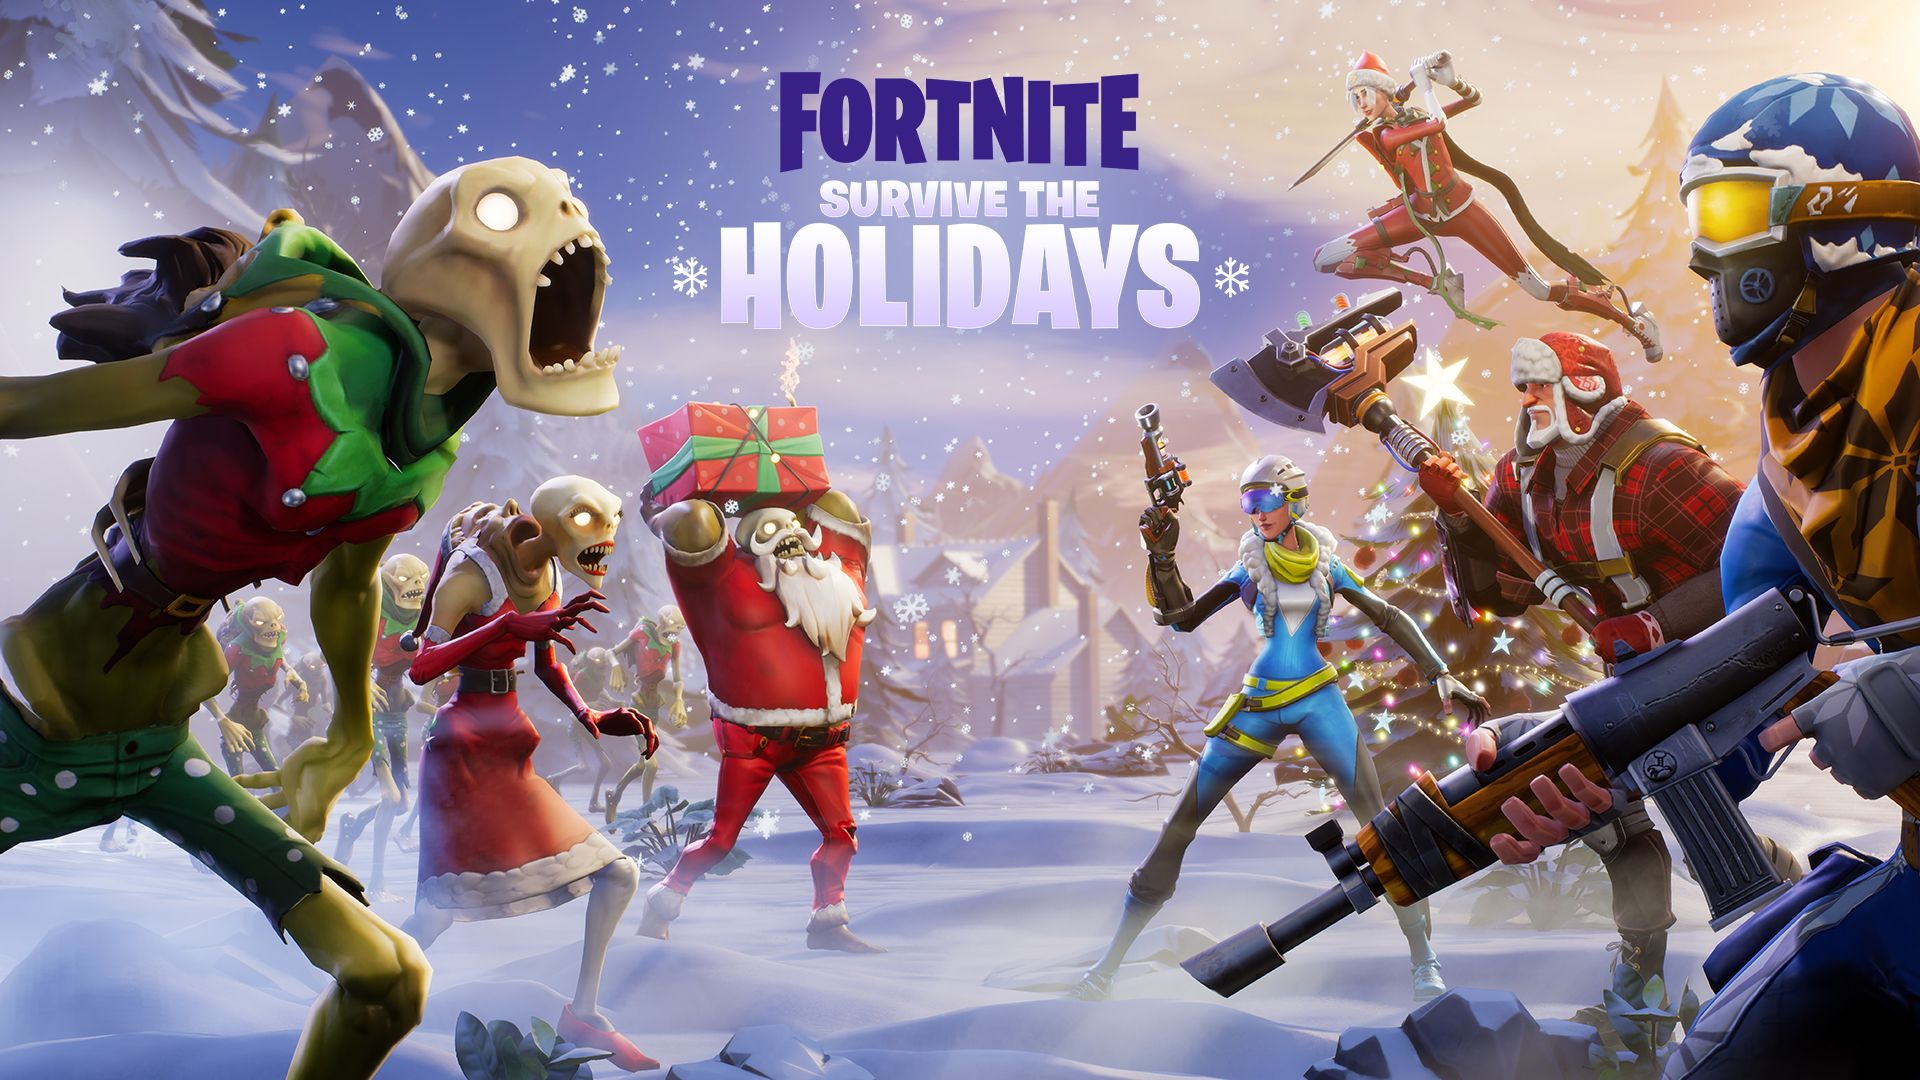 Bandolier Fortnite Wallpapers Posted By Sarah Johnson